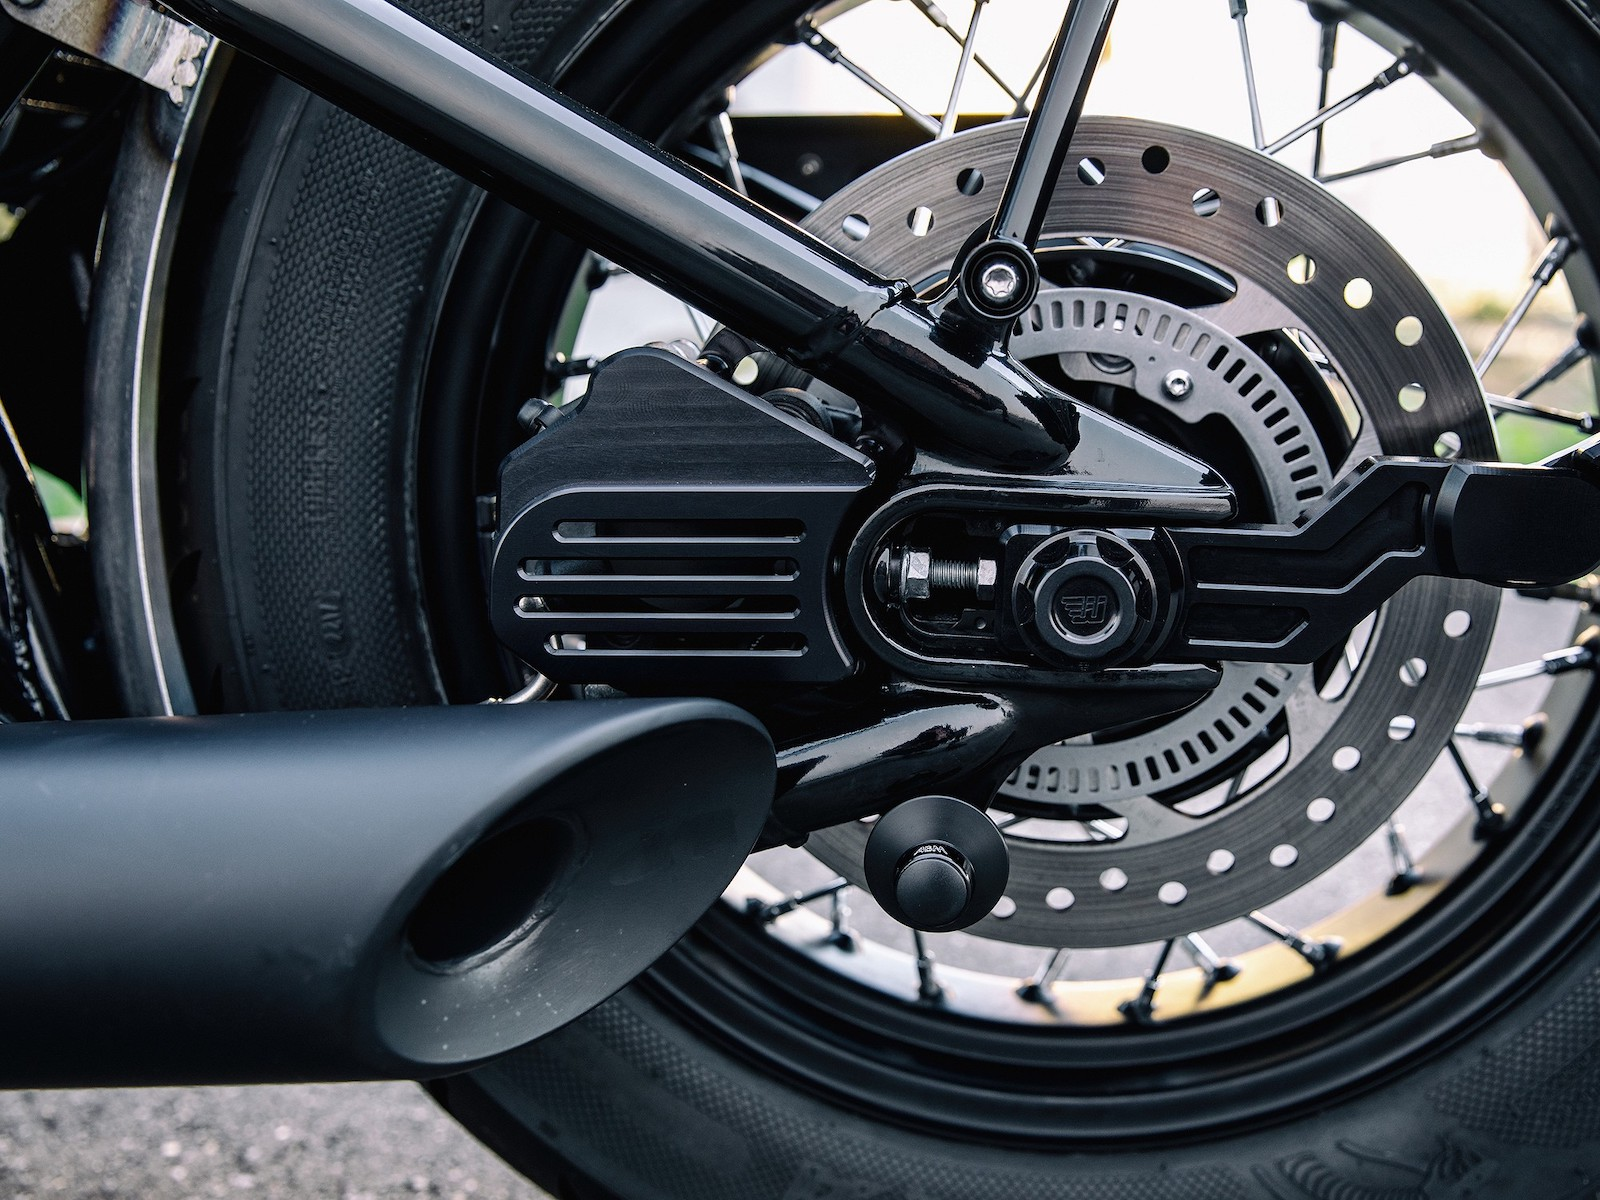 detail shot of an ABS braking system on a Triumph Motorcycle